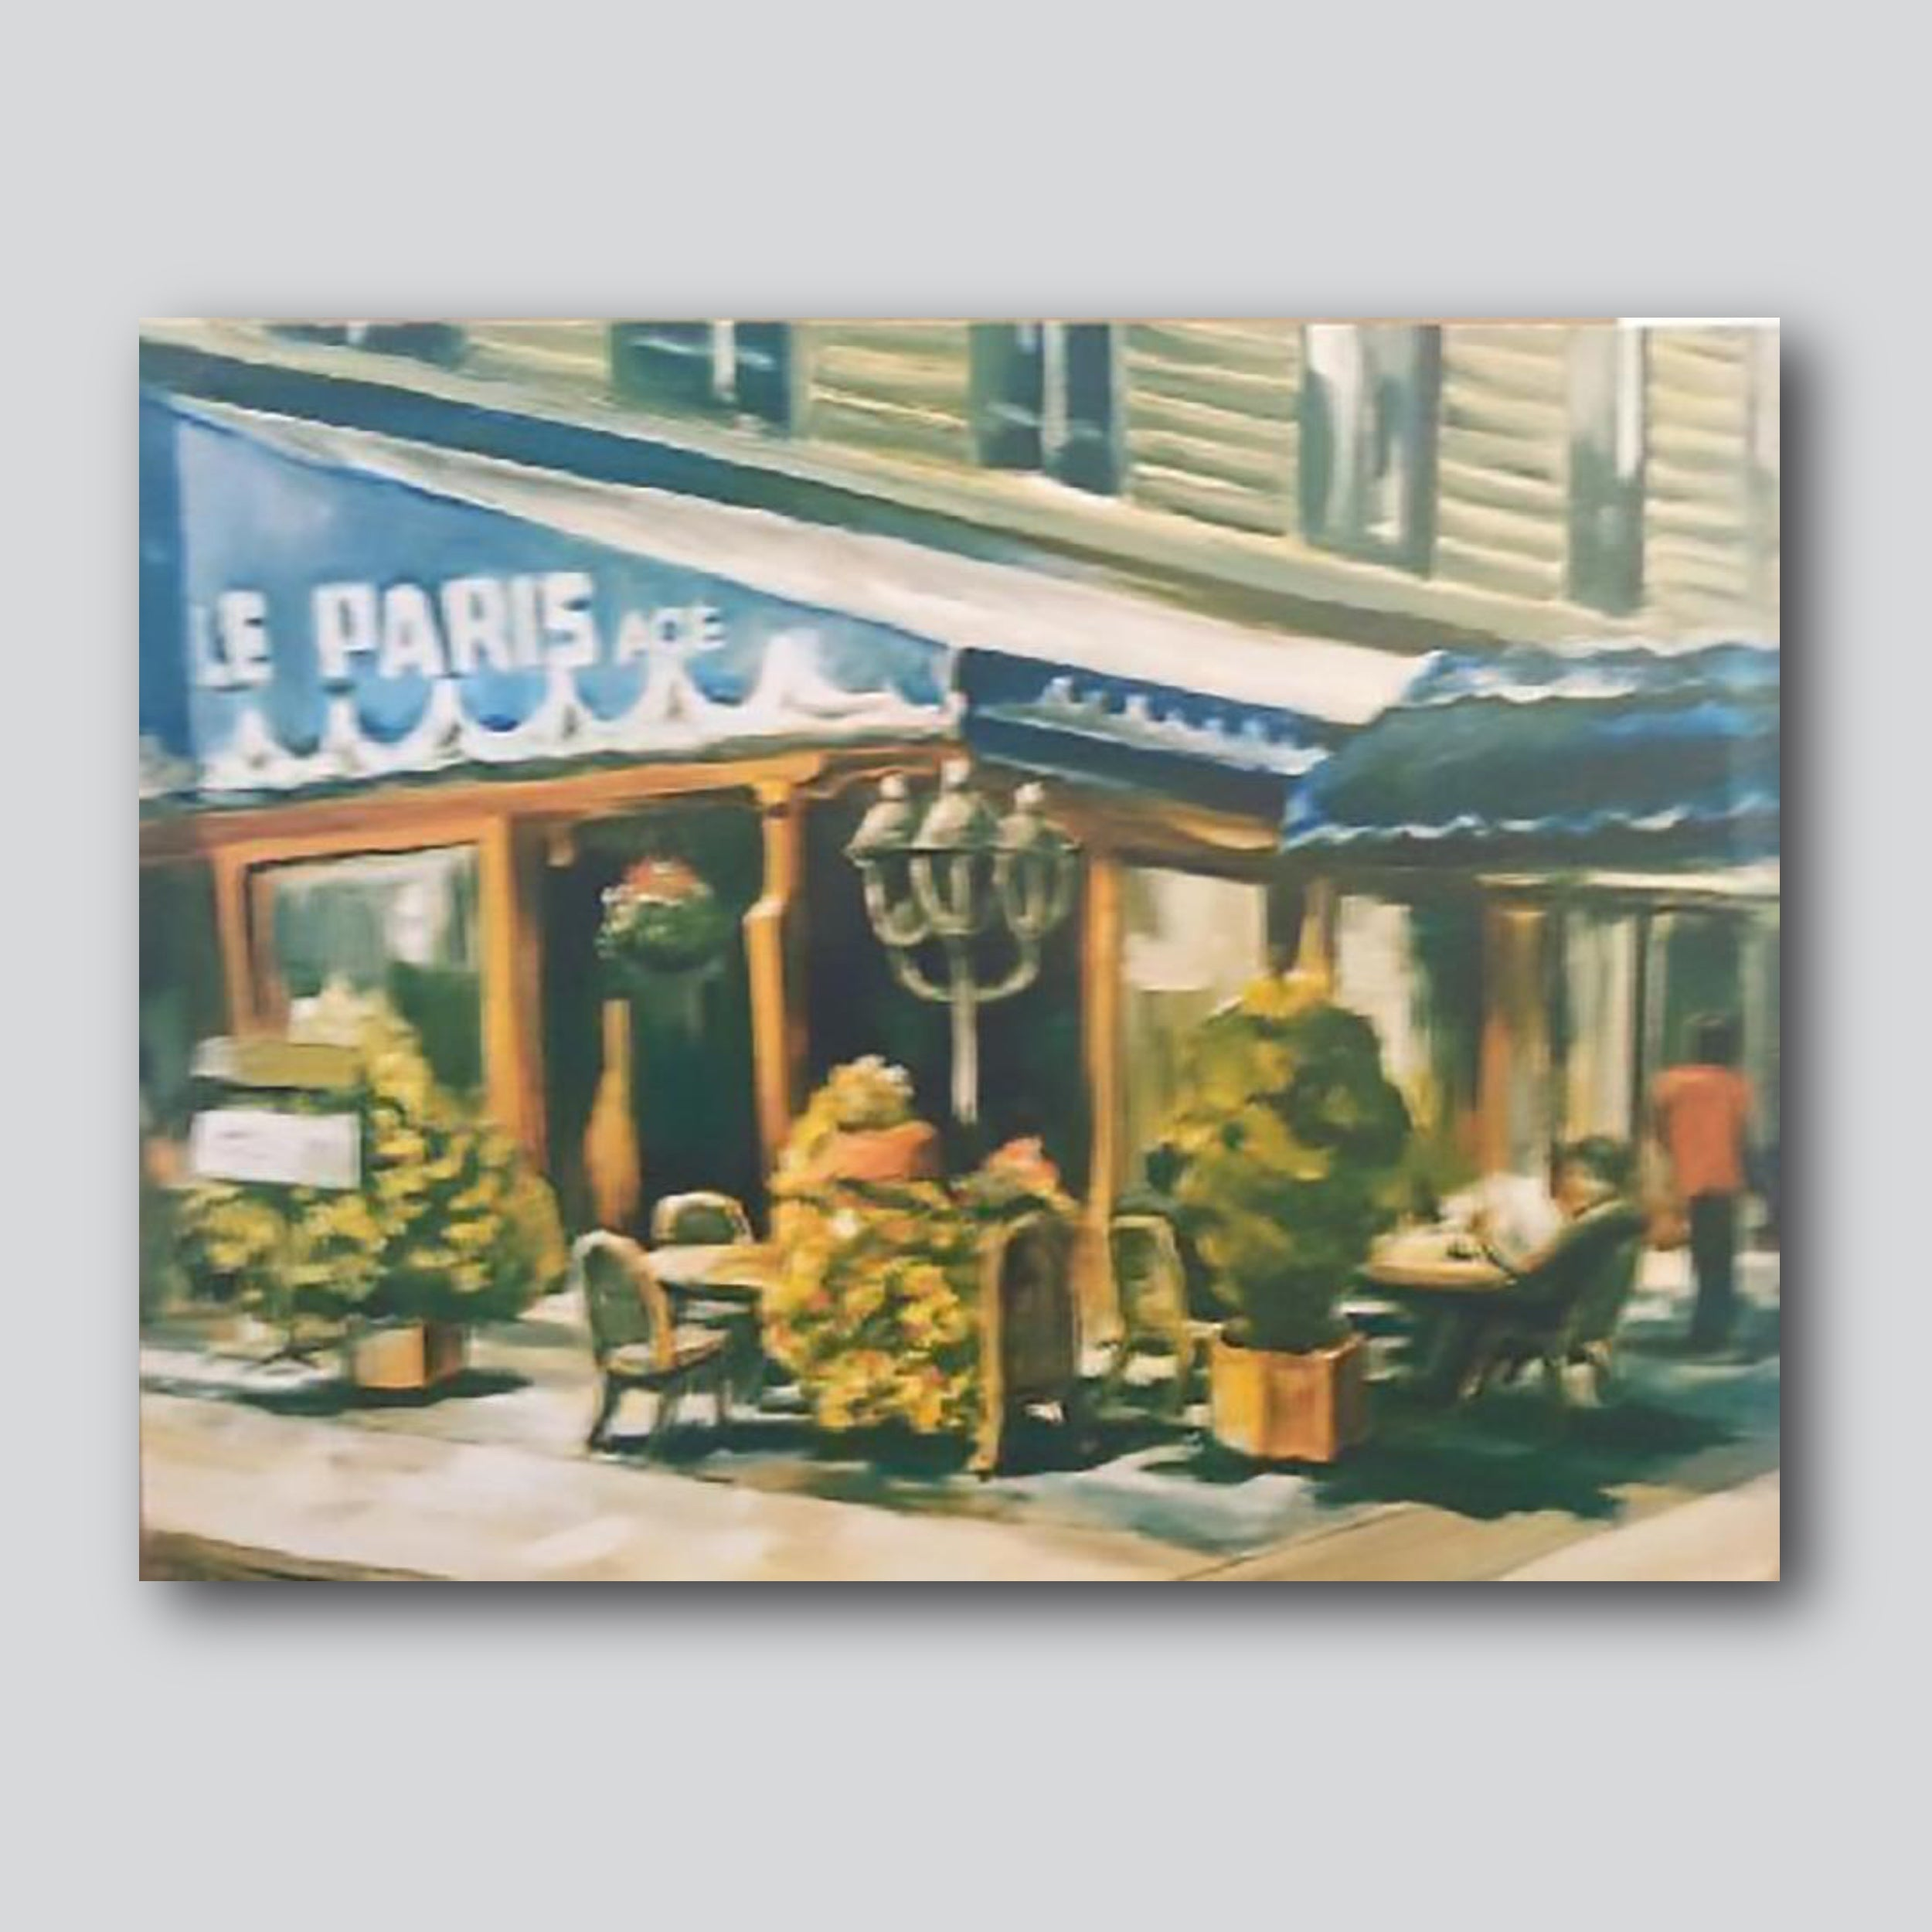 "Paris Cafe/ 32"" x 25"" Giclee Printed On Canvas"